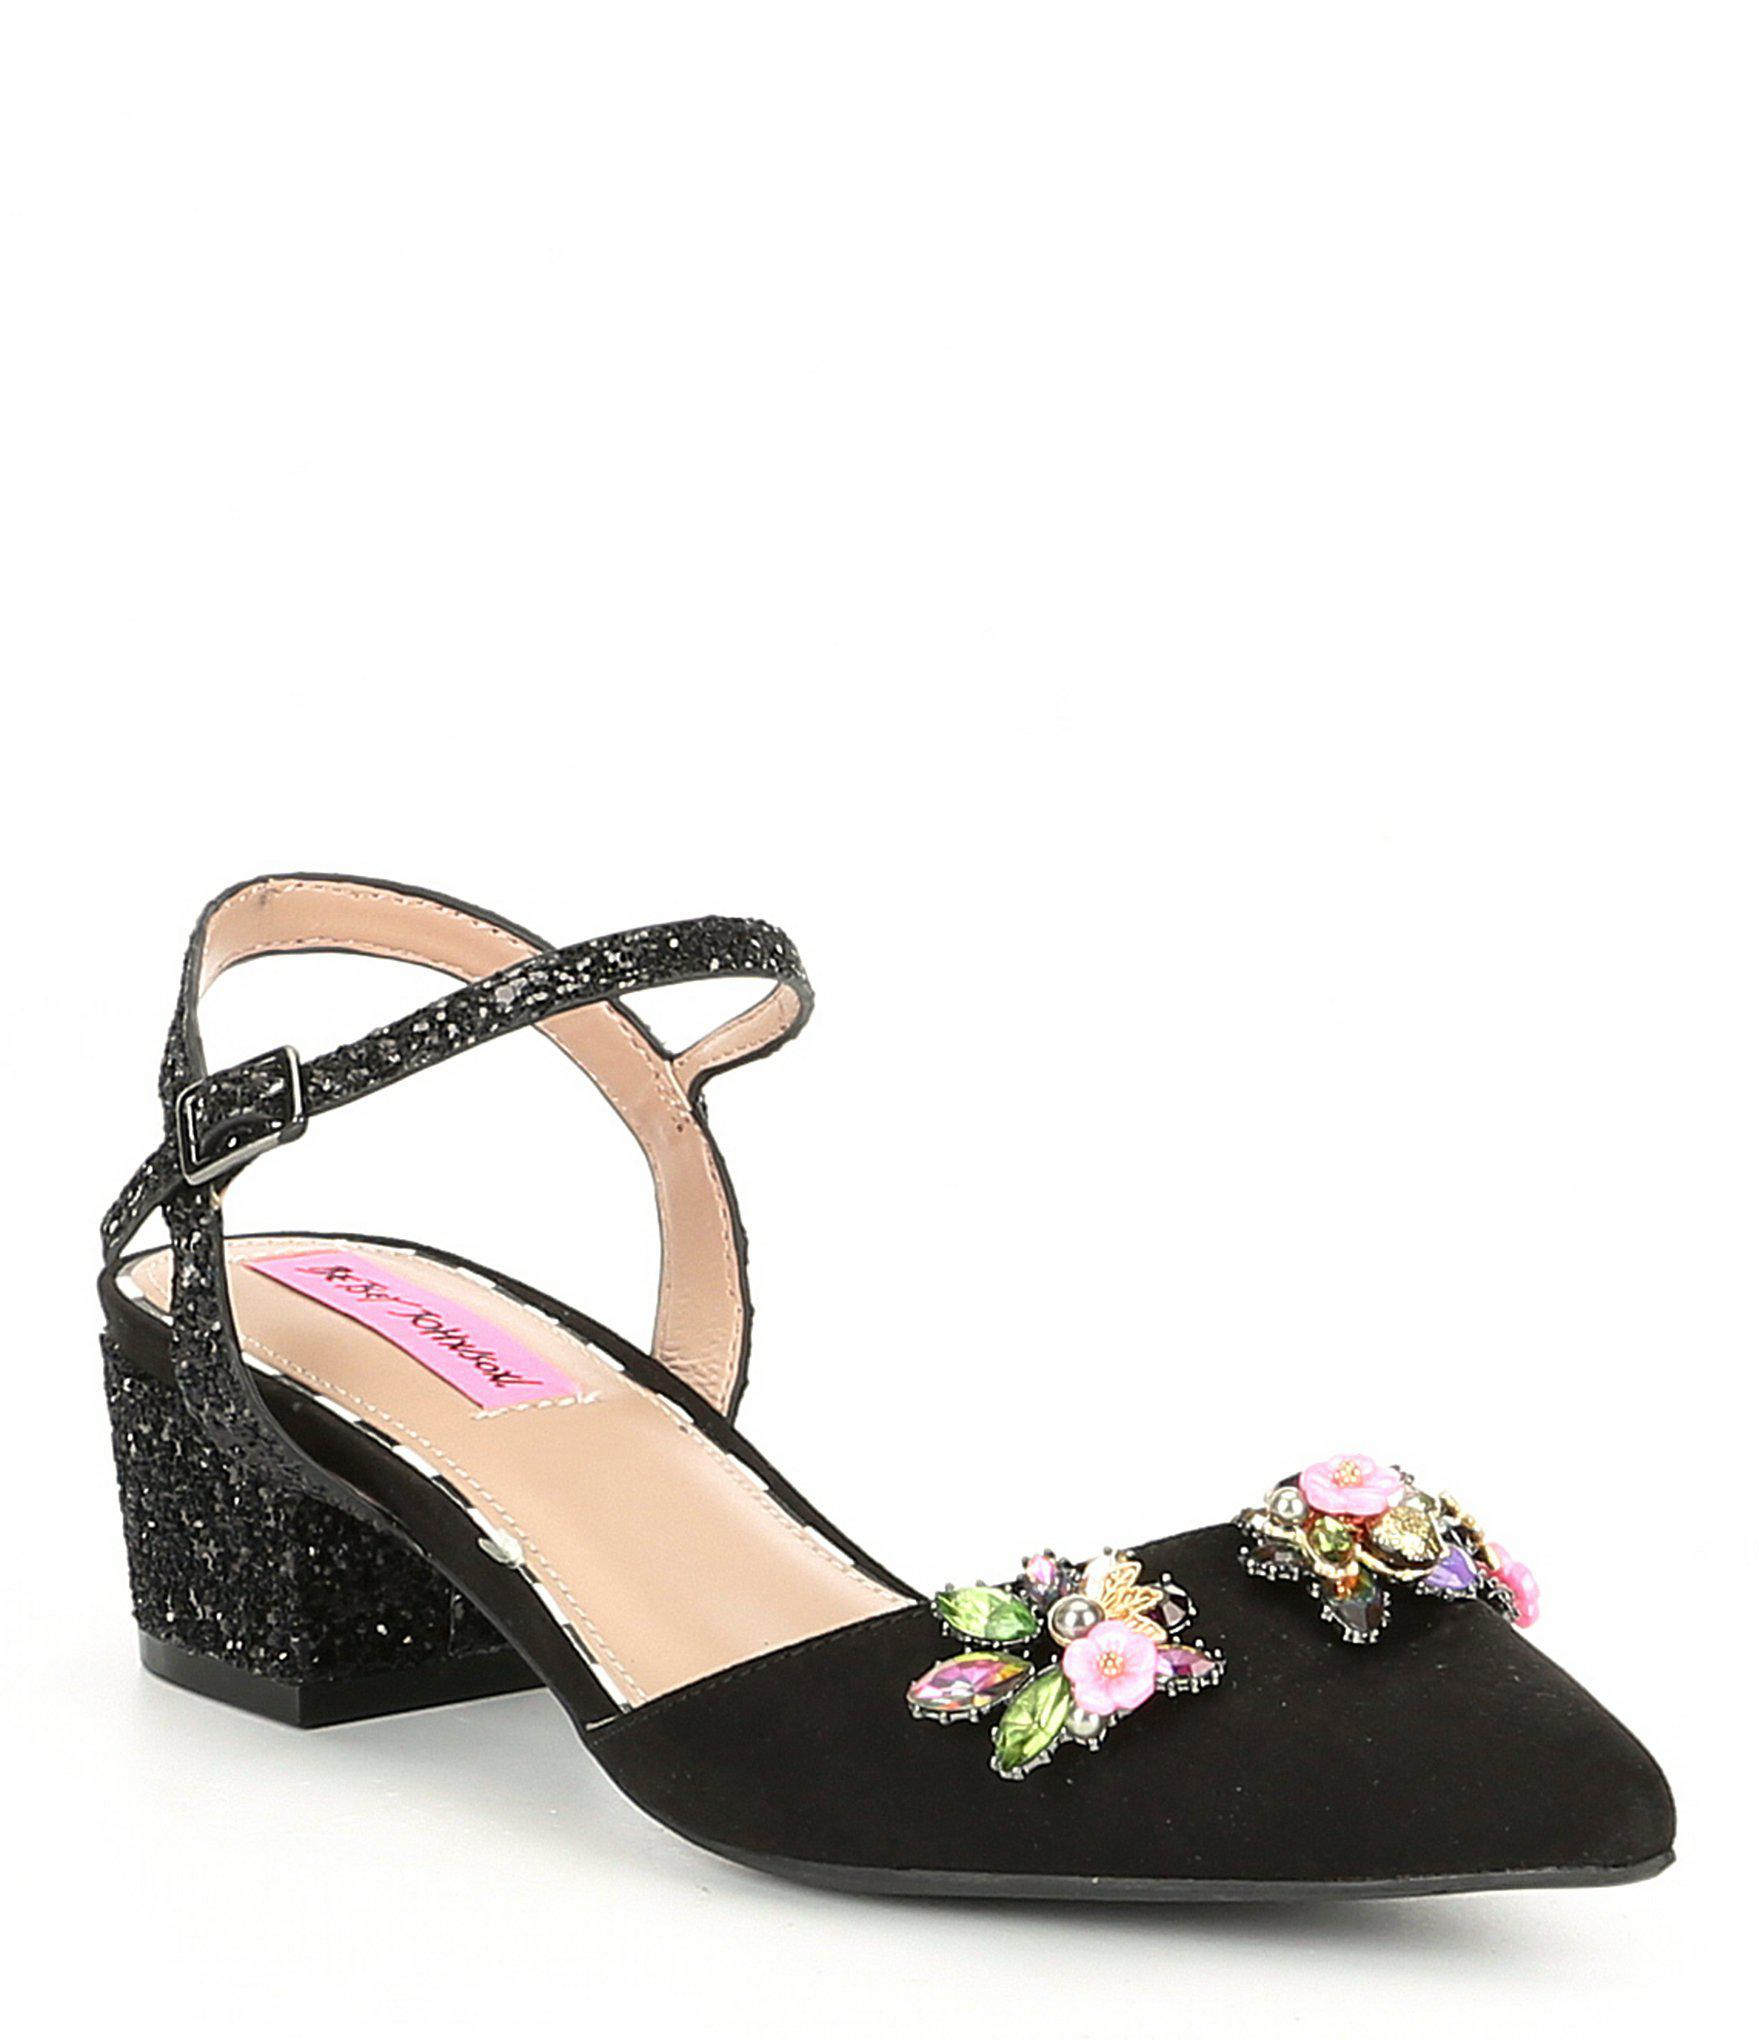 f31aa17a248 Betsey Johnson Black Elin Lucite Floral Block Heel Dress Pumps